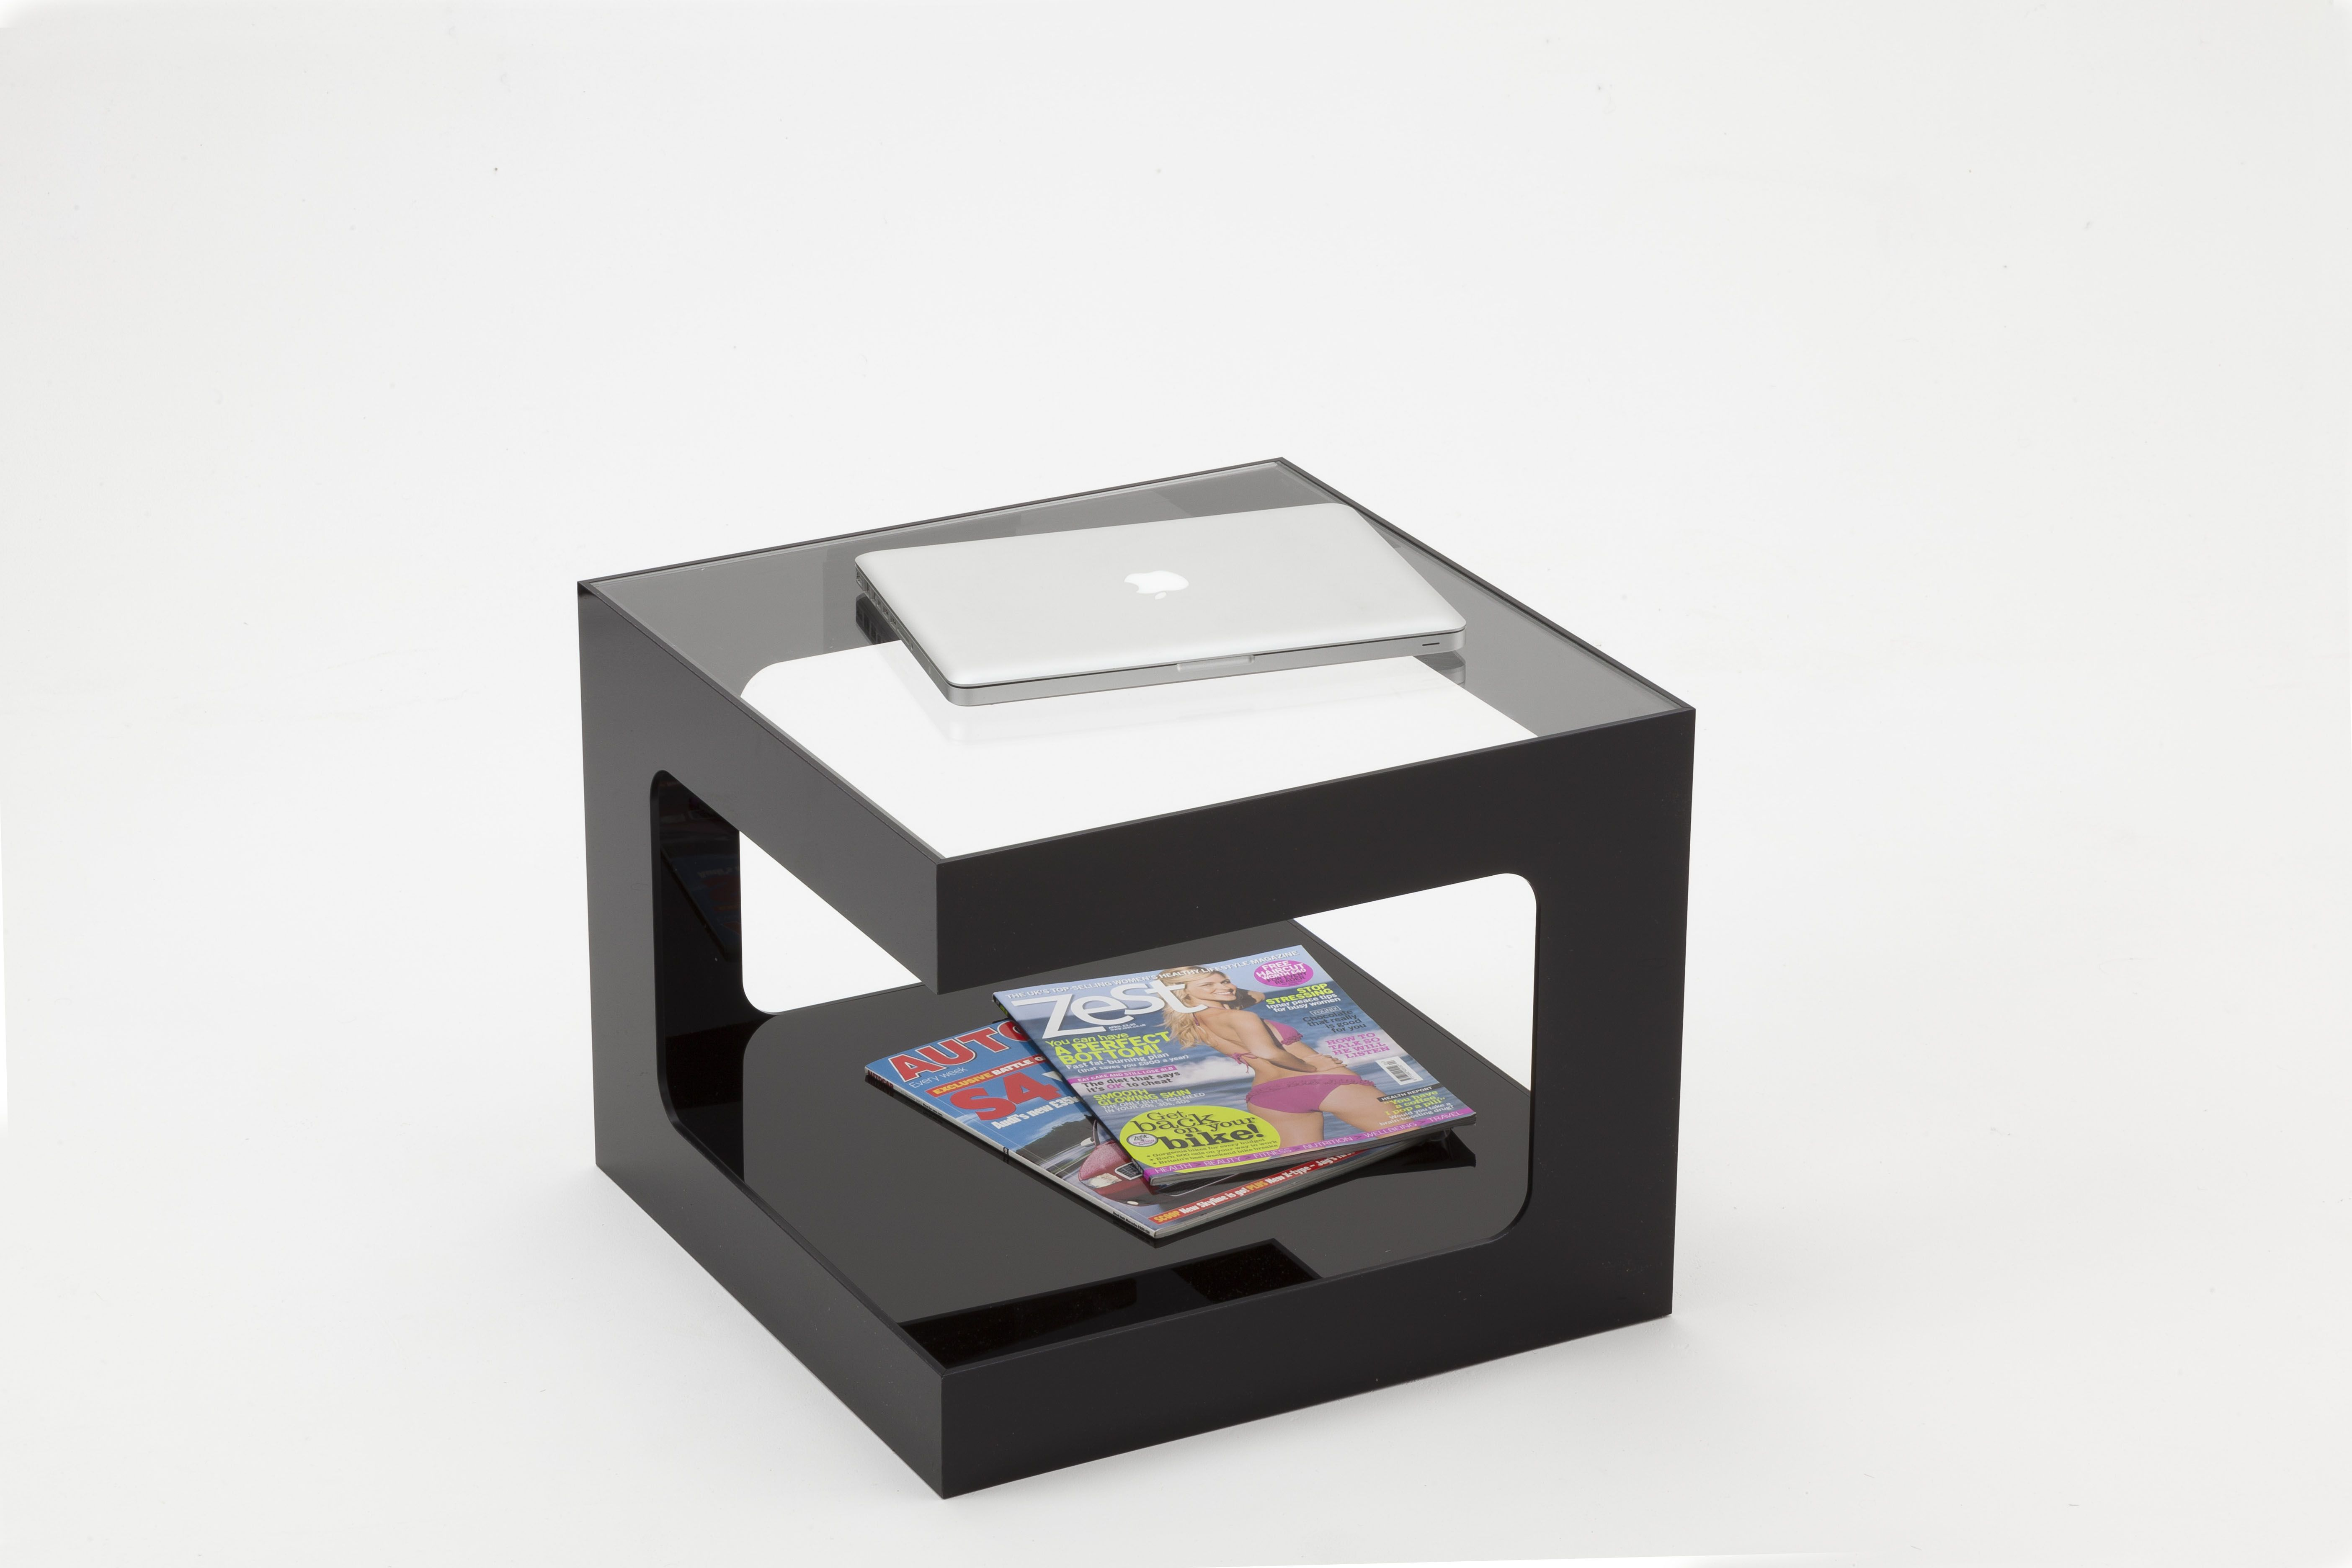 Black Acrylic Coffee Table With Clear Top Manufactured From Premium 6mm Thick Measuring 500 W X D 400mm H